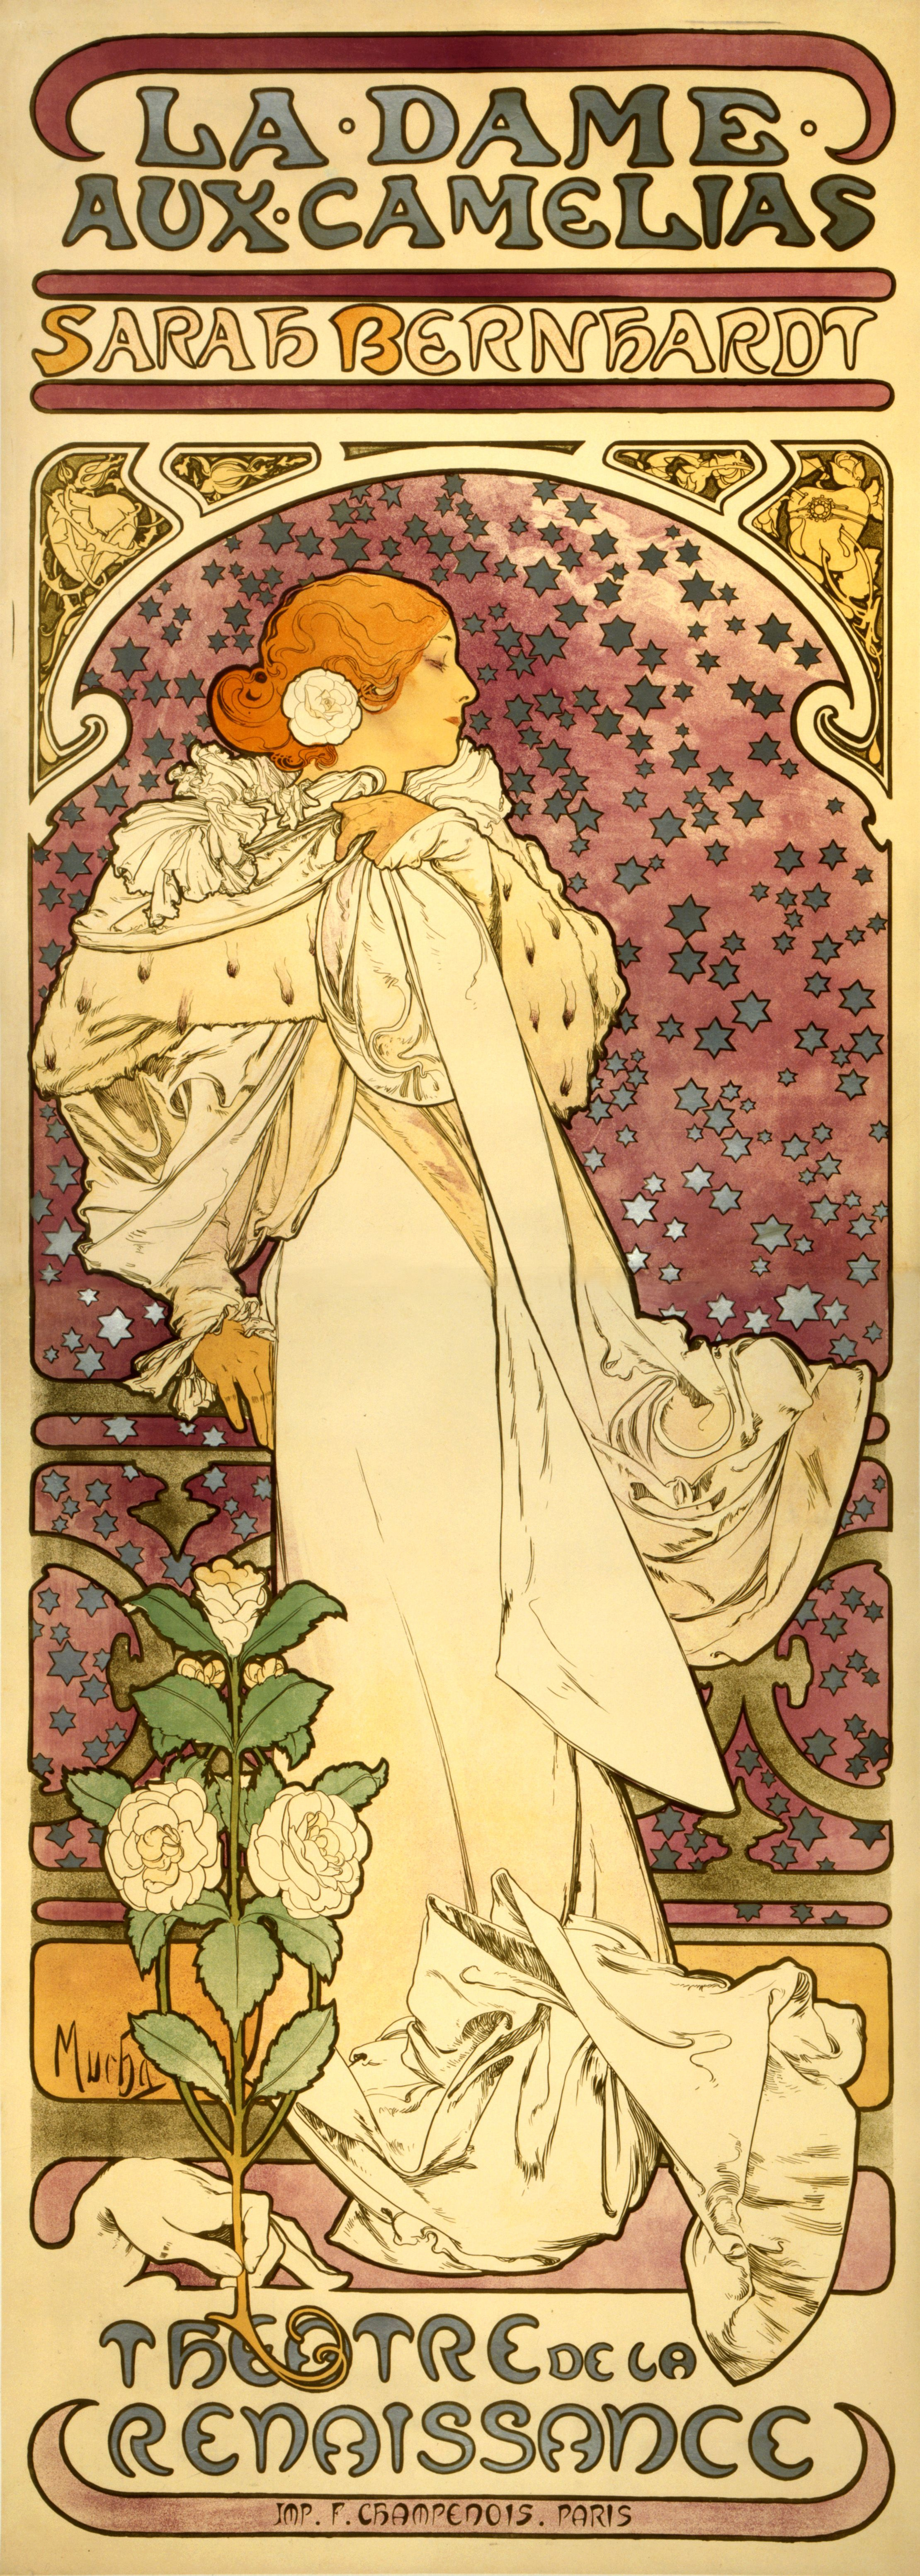 Alfonse Mucha. The lady of the camellias. Promotional poster for Sarah Bernhardt